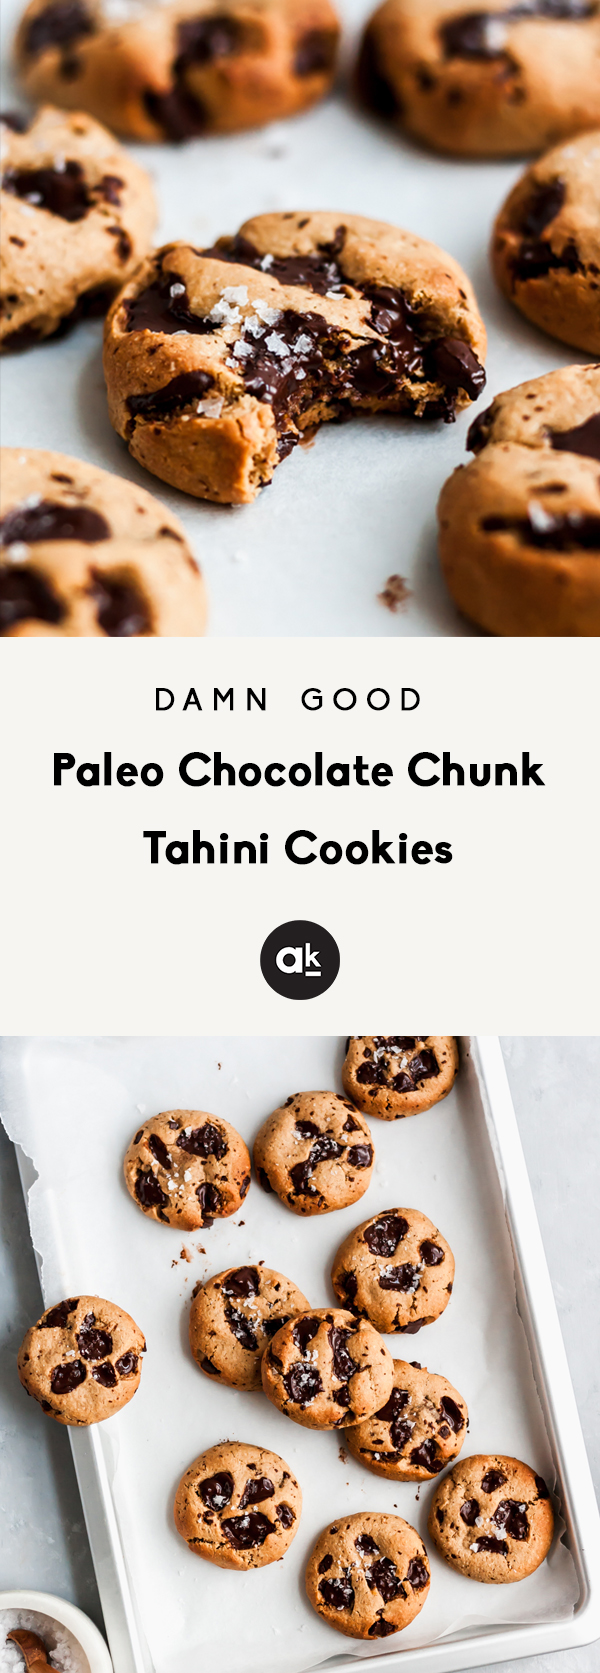 Damn Good Paleo Chocolate Chunk Tahini Cookies